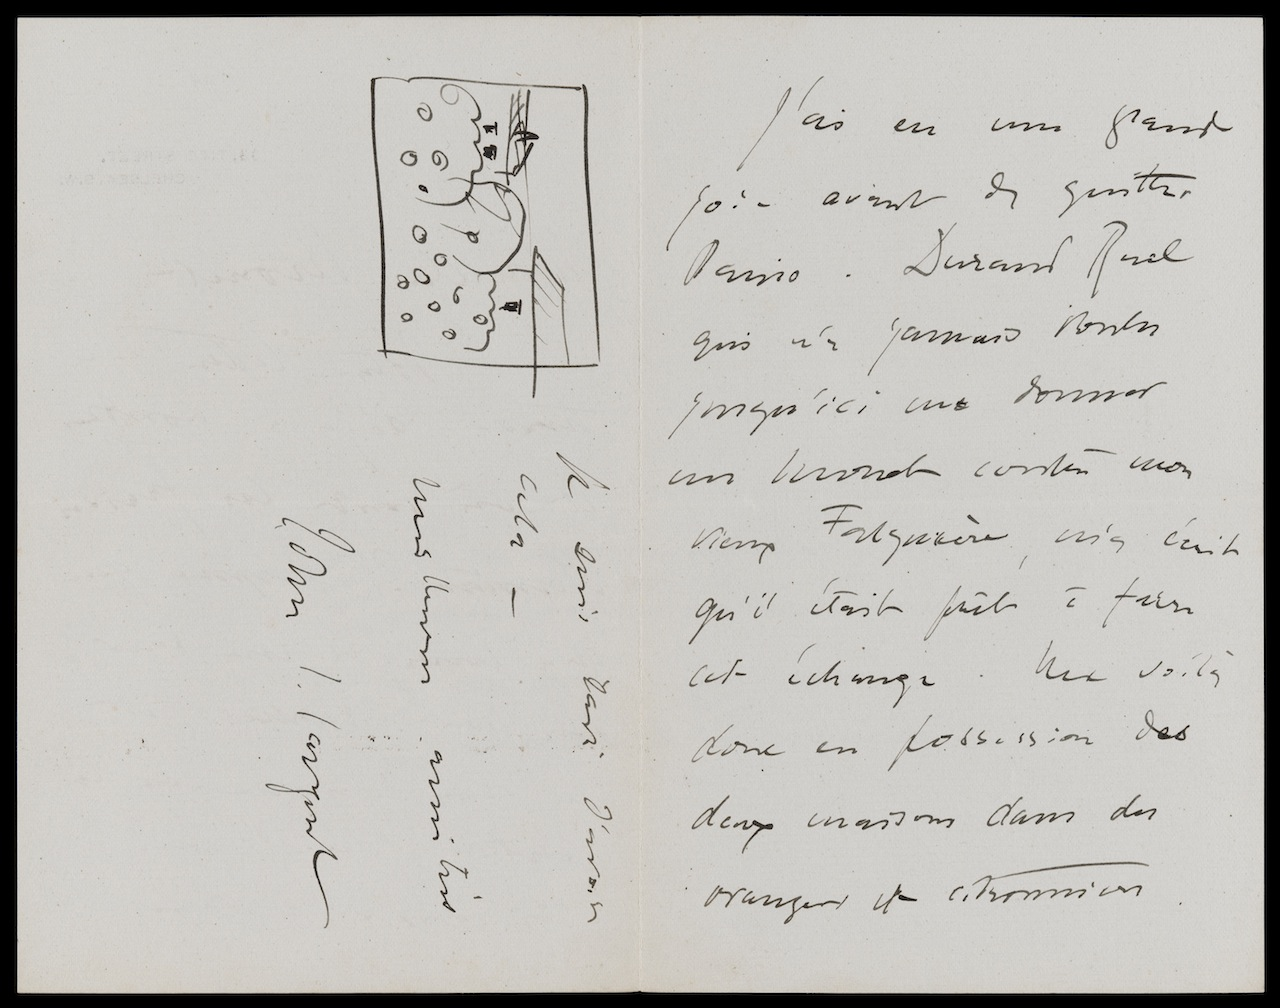 John Singer Sargent to Claude Monet, Sept 1 [1897], from 33 Tite St., London, re his acquisition of a Monet John Singer Sargent (American, 1856 – 1925) 1891  Ink on paper *Museum of Fine Arts, Boston.  The John Singer Sargent Archive—Gift of Jan and Warren Adelson *Photograph © Museum of Fine Arts, Boston